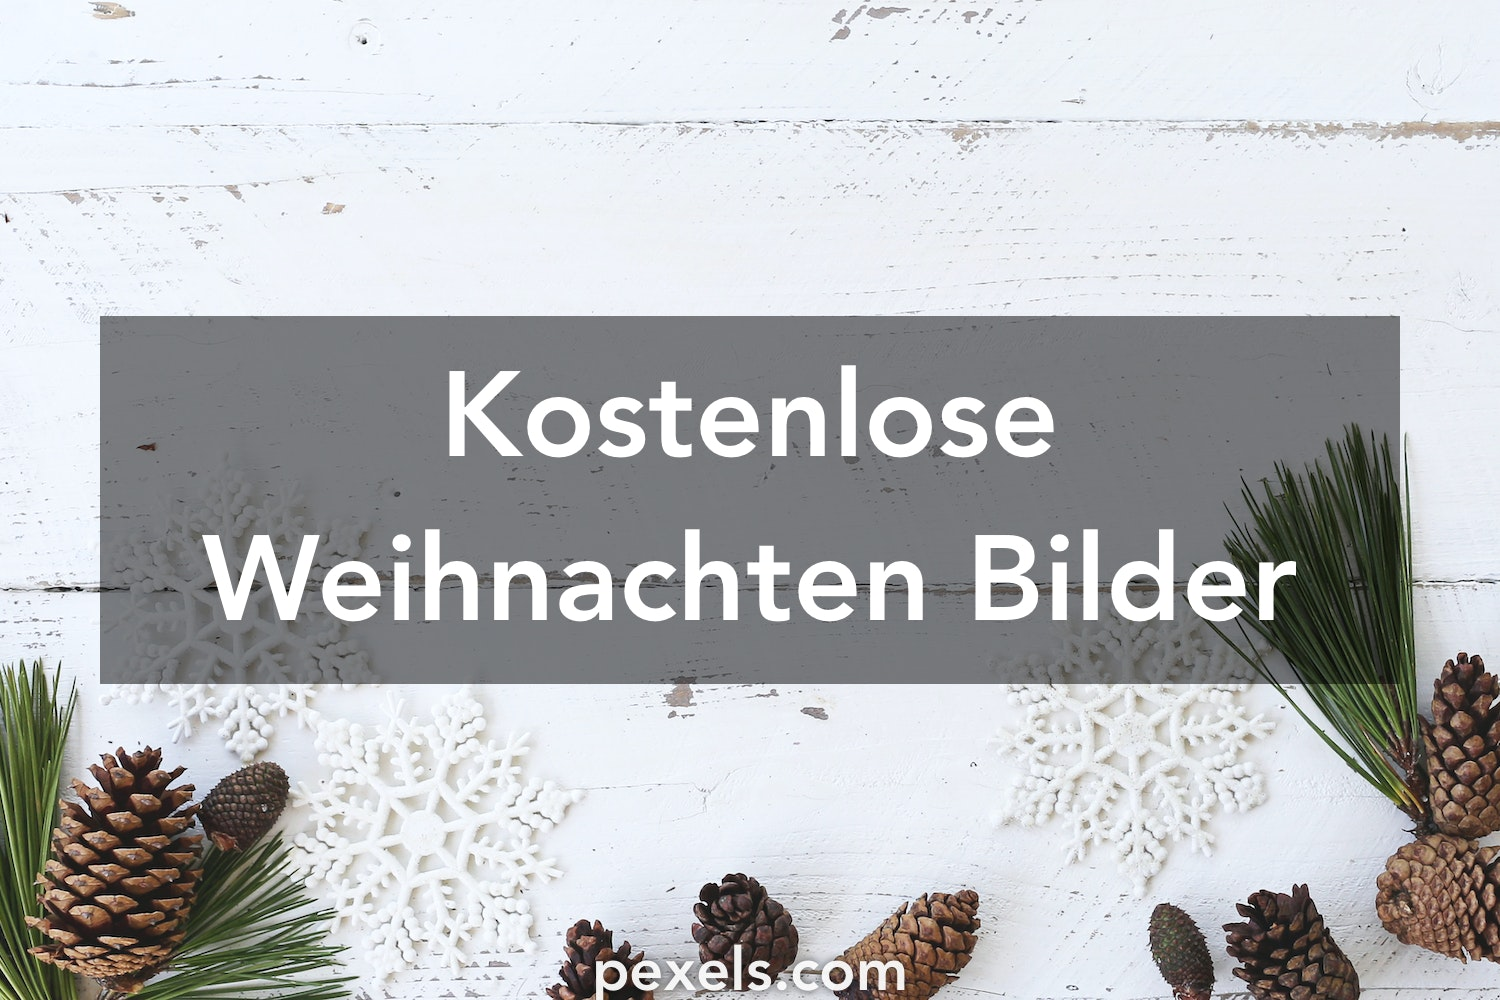 kostenlose stock fotos - photo #9